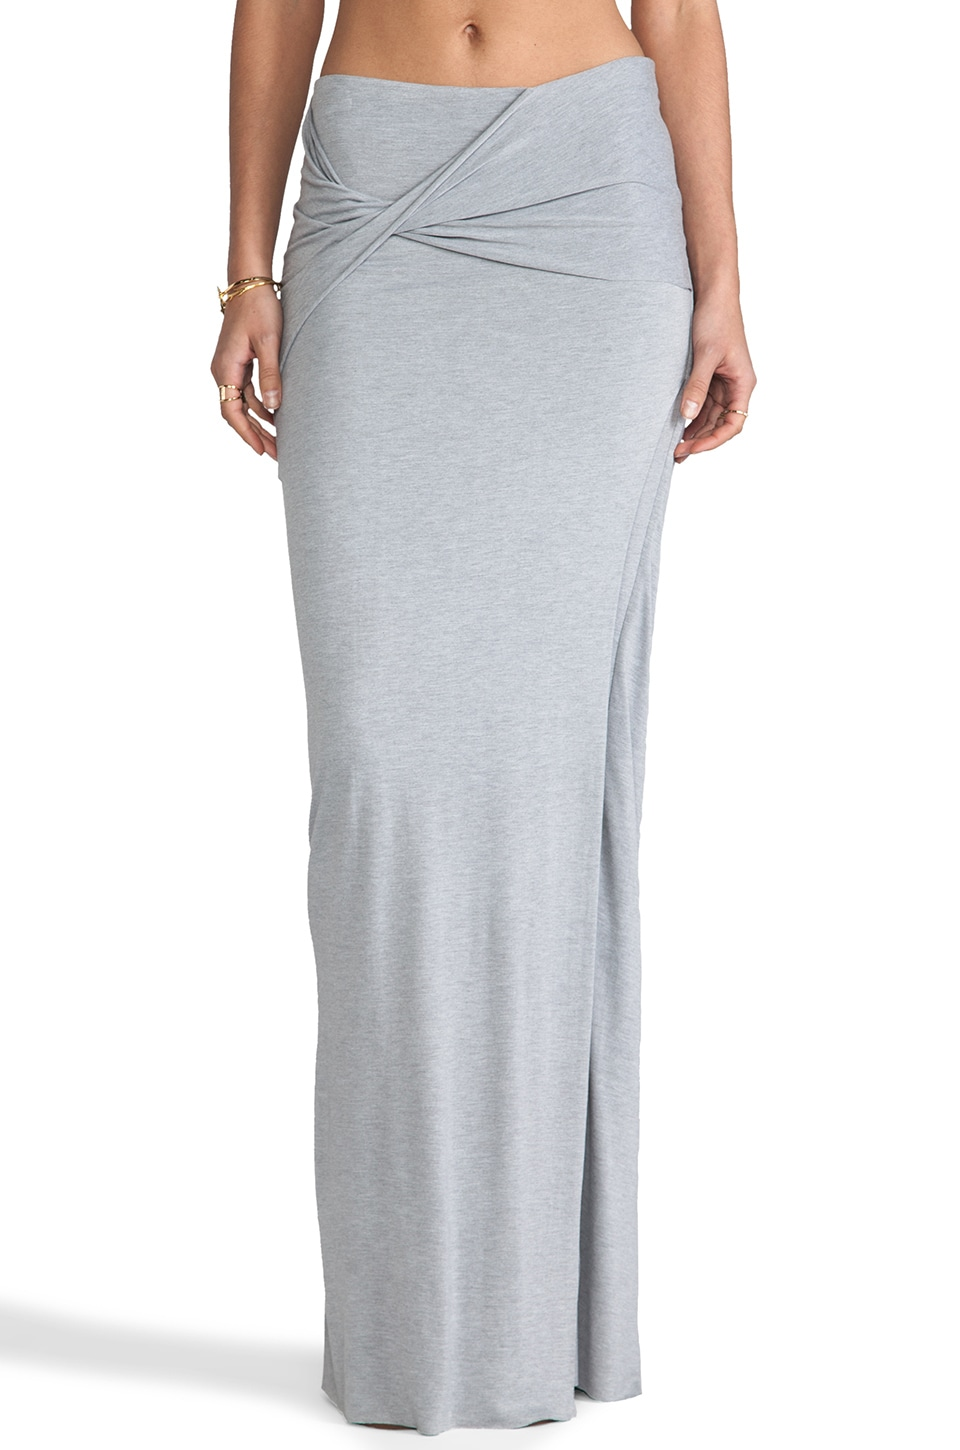 April, May Sonnet Skirt in Grey